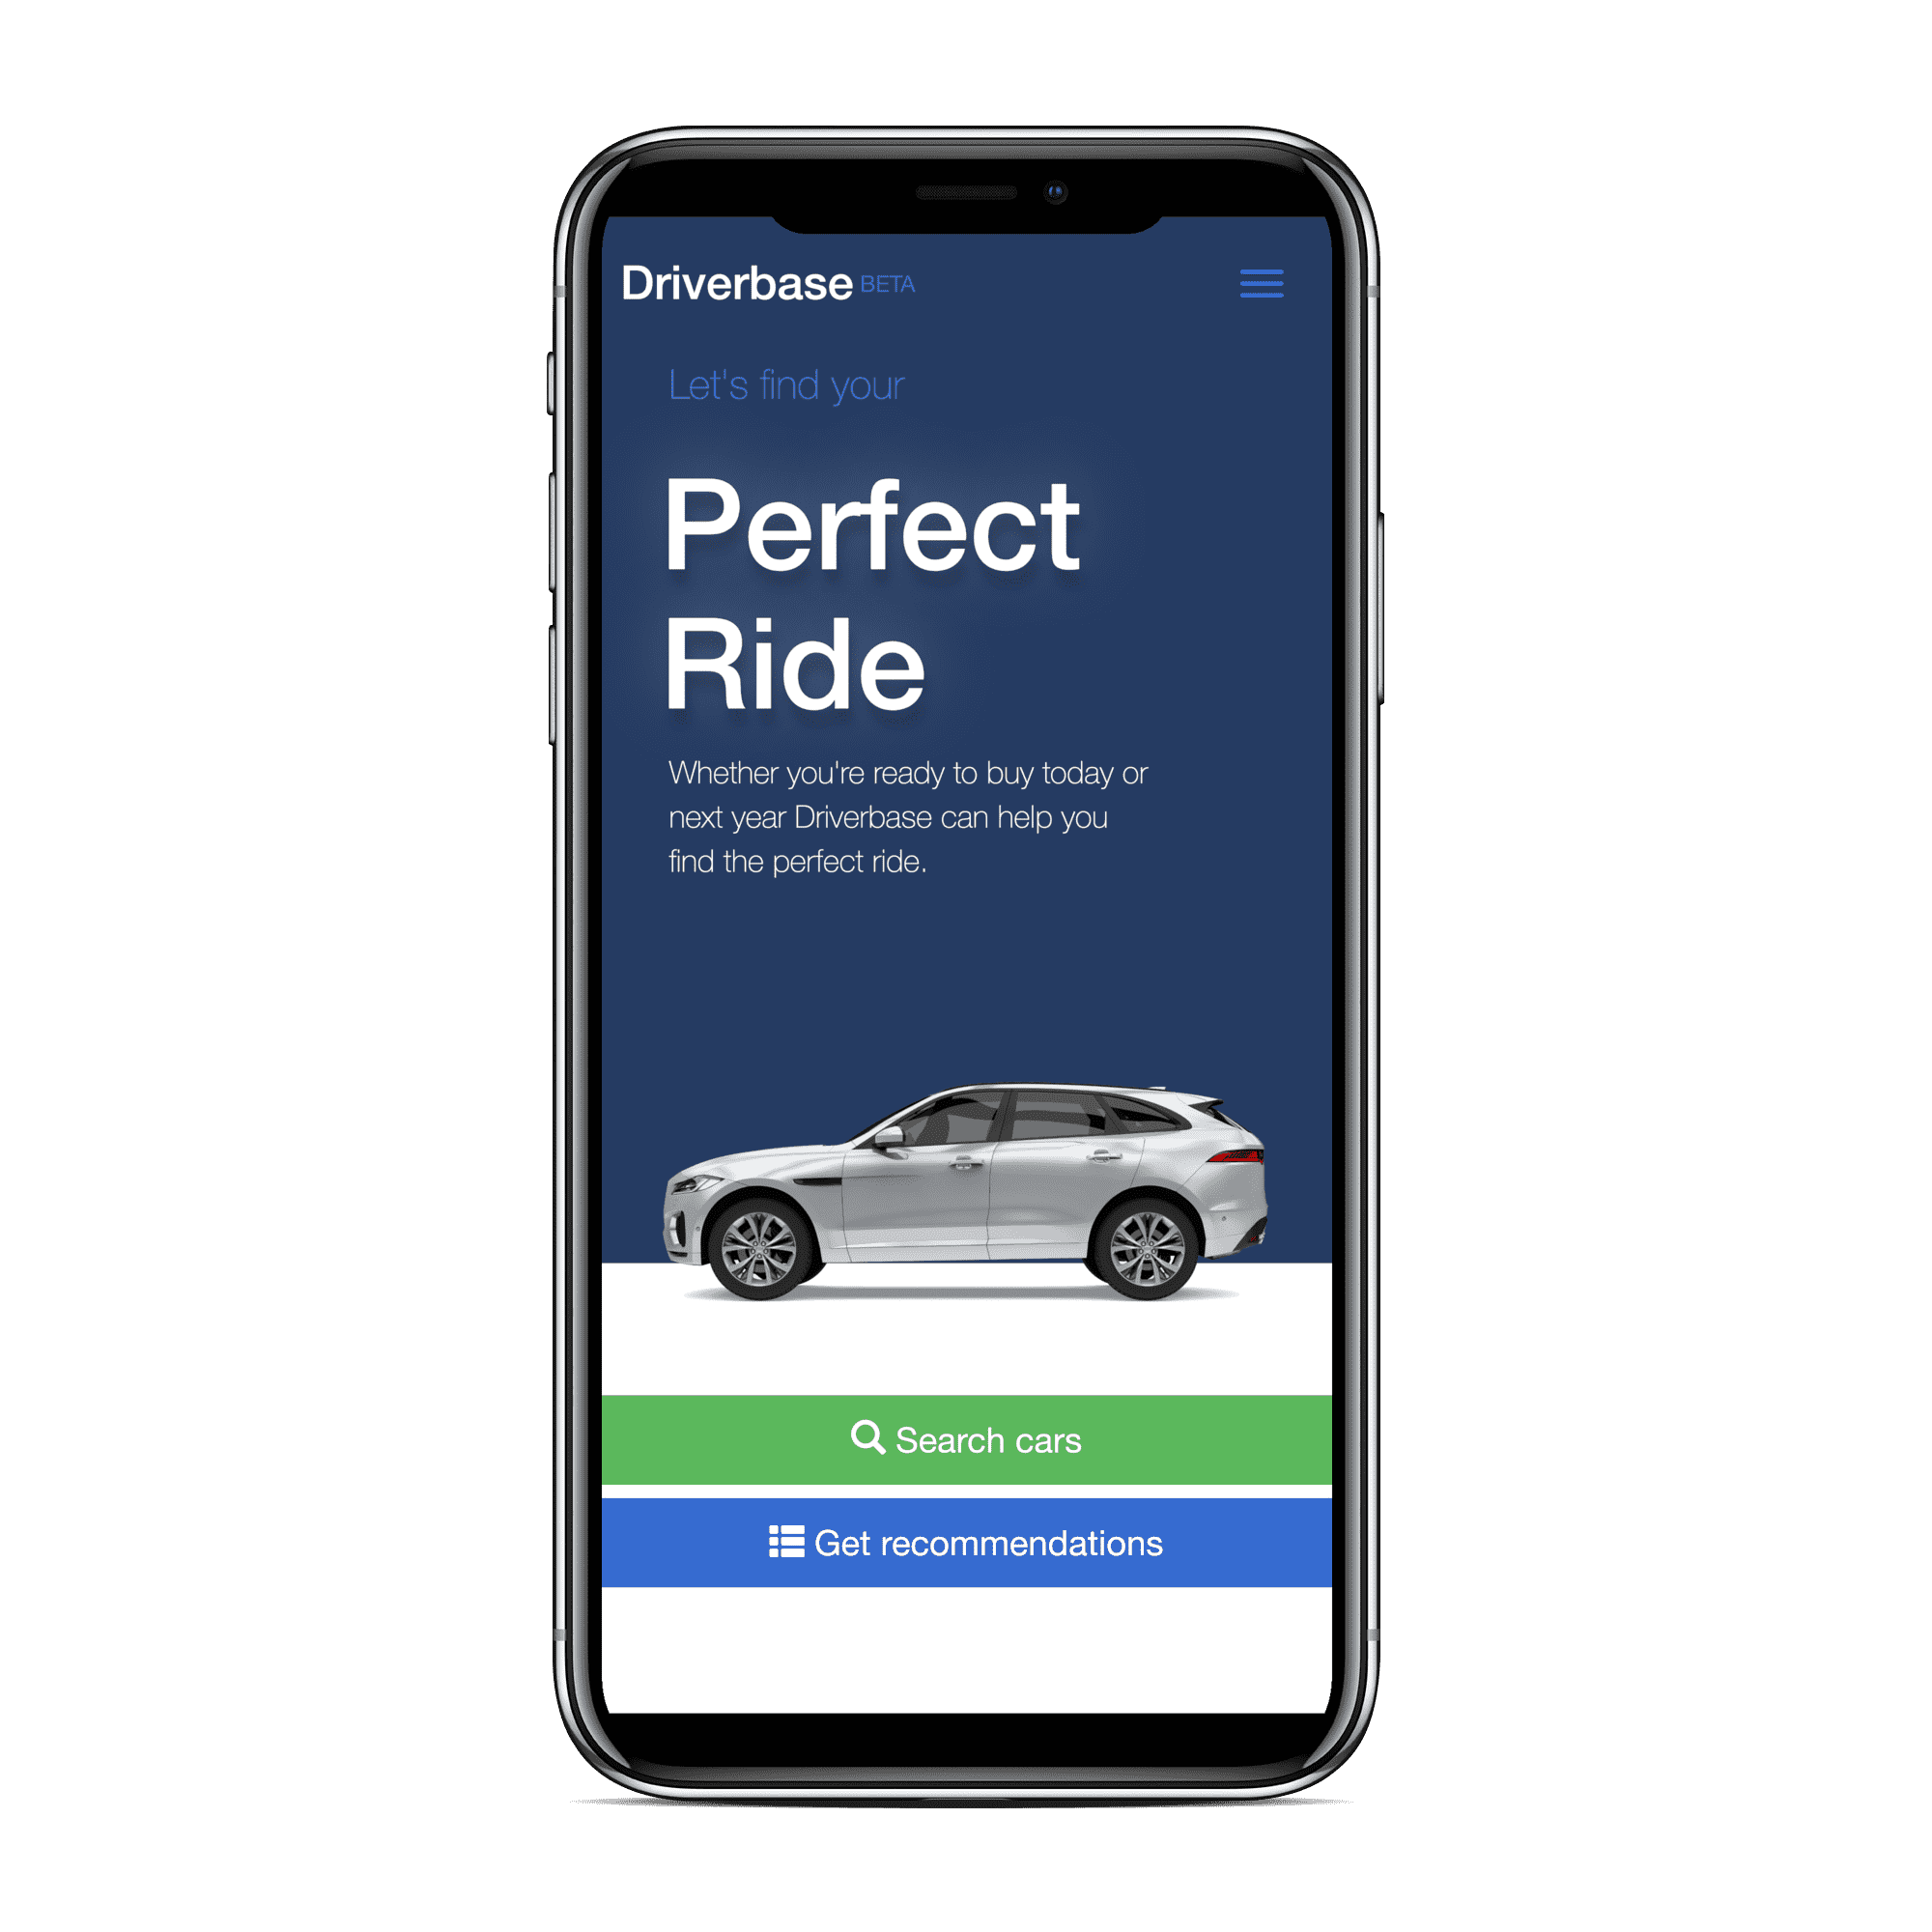 Driverbase cars for sale on iphone x